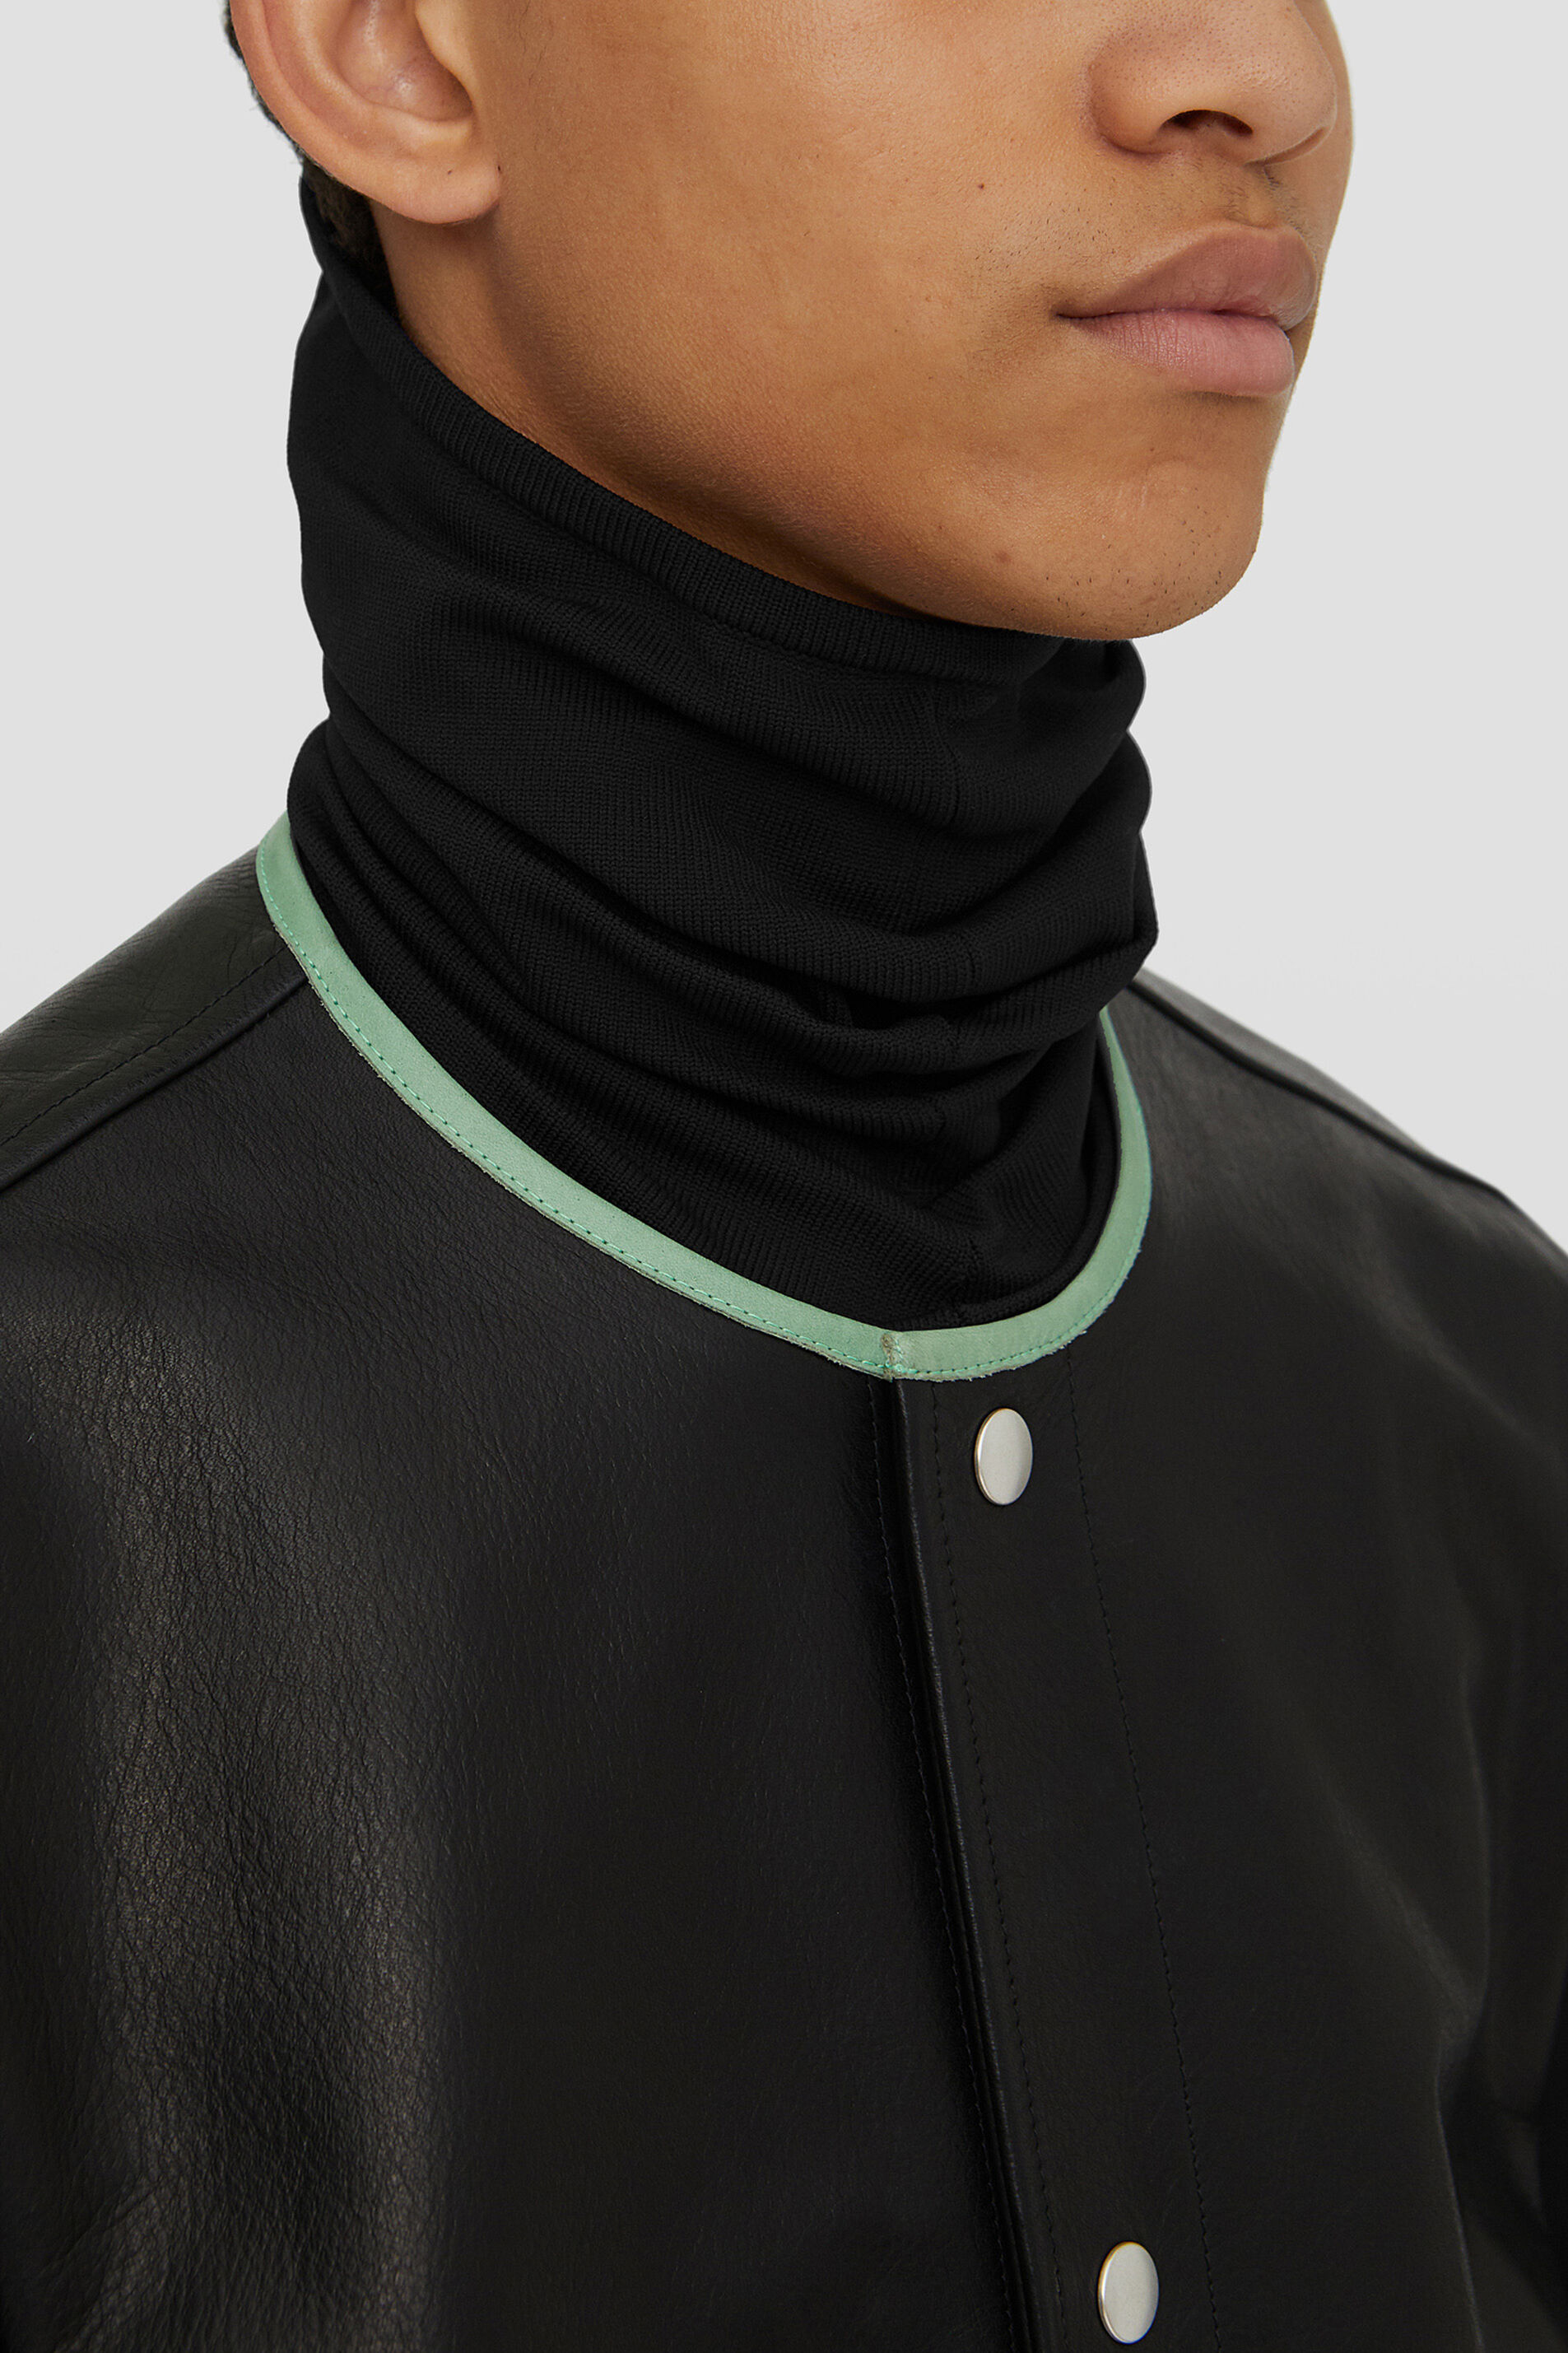 Collar, black, large